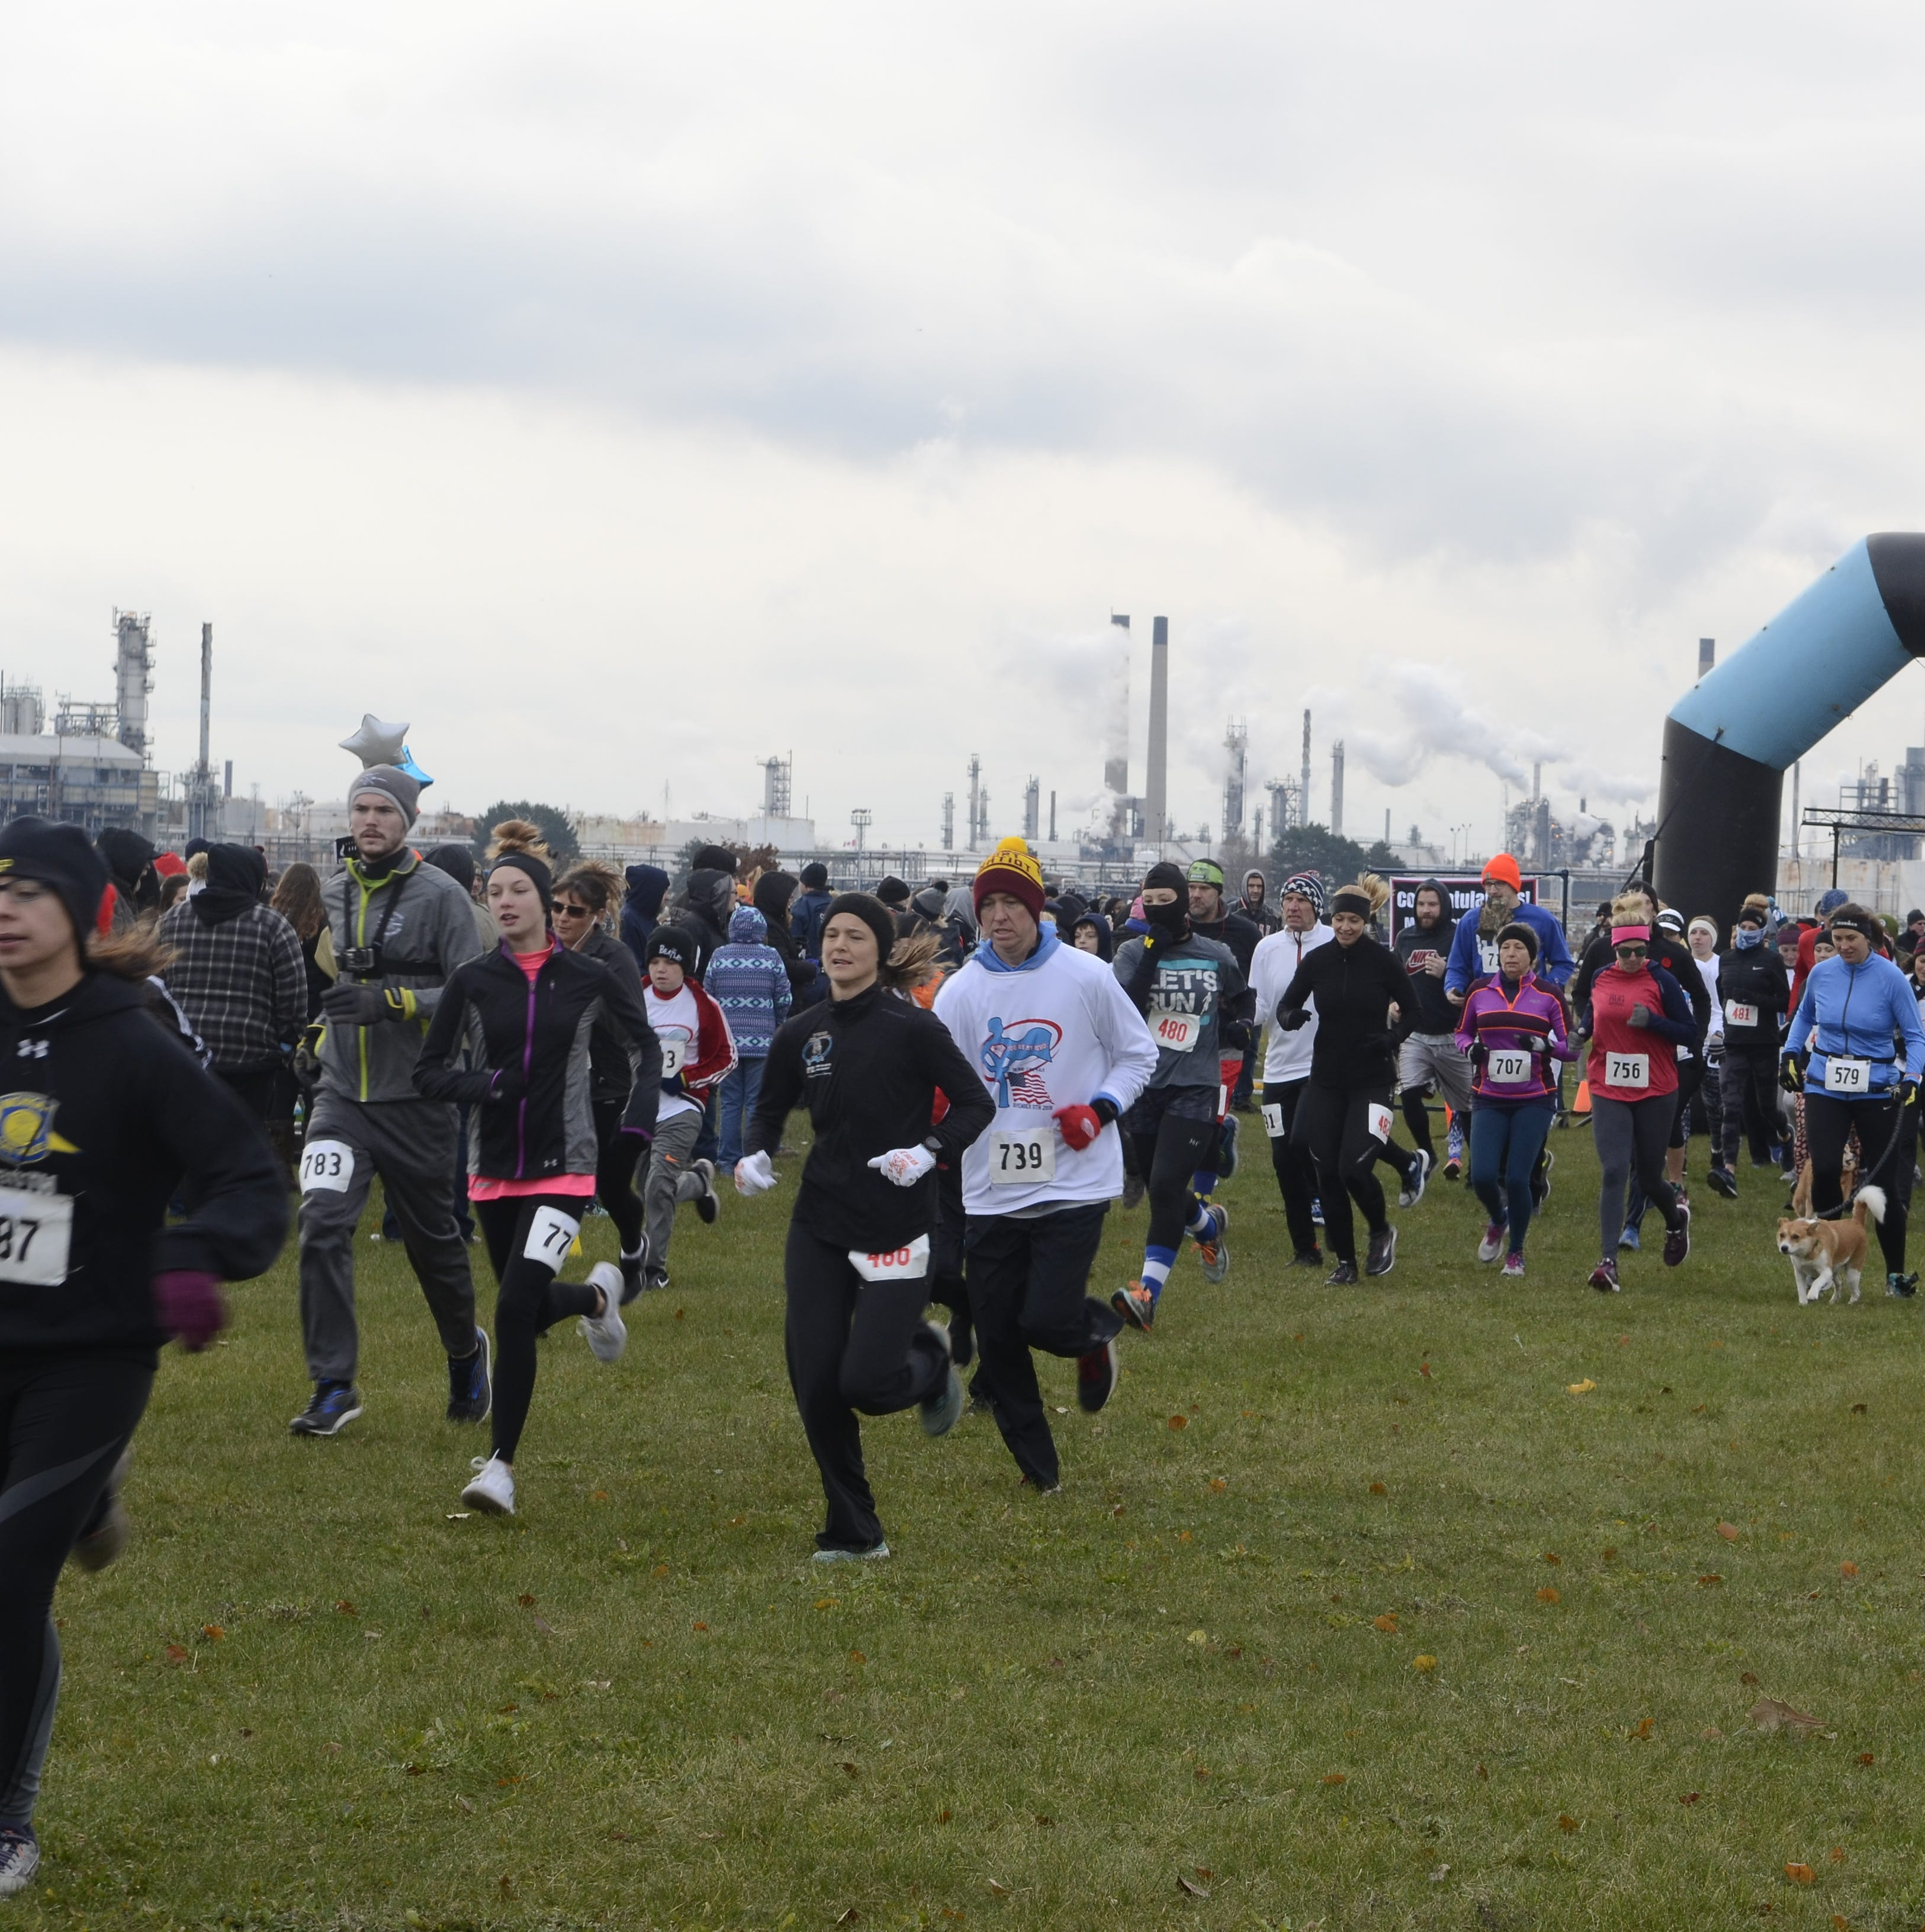 Tragedies bring victims, families together for P.S. You're My Hero run